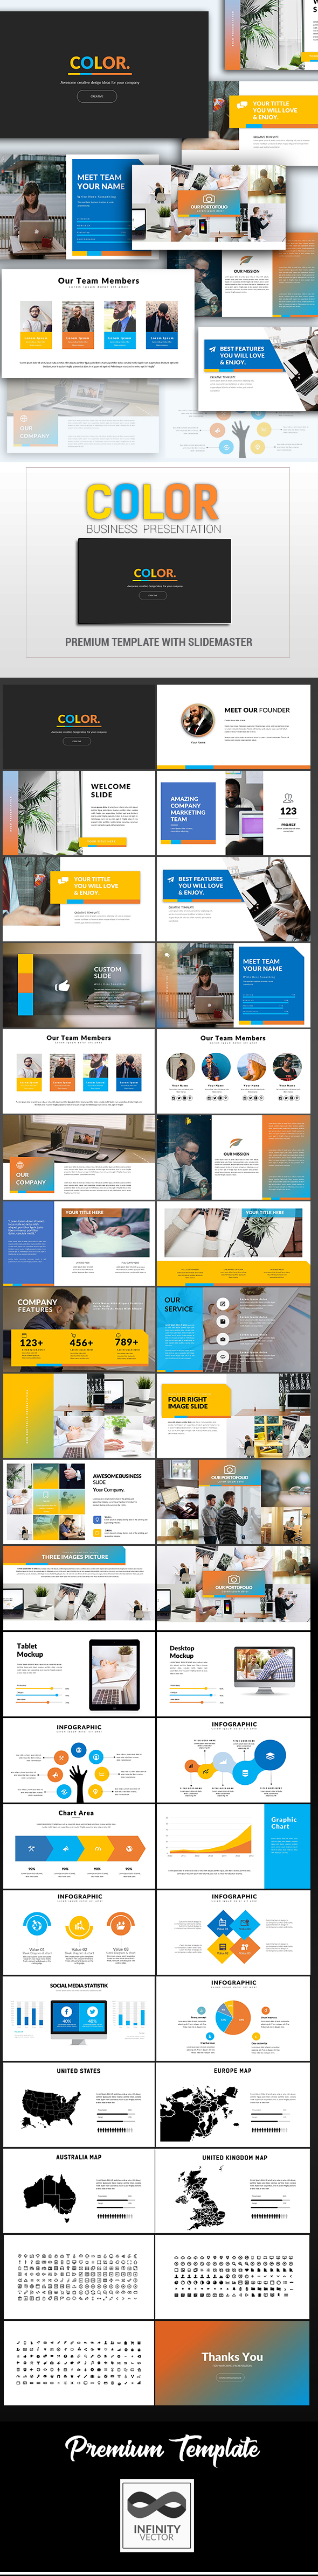 Color Multipurpose Presentation Google Slide - Google Slides Presentation Templates